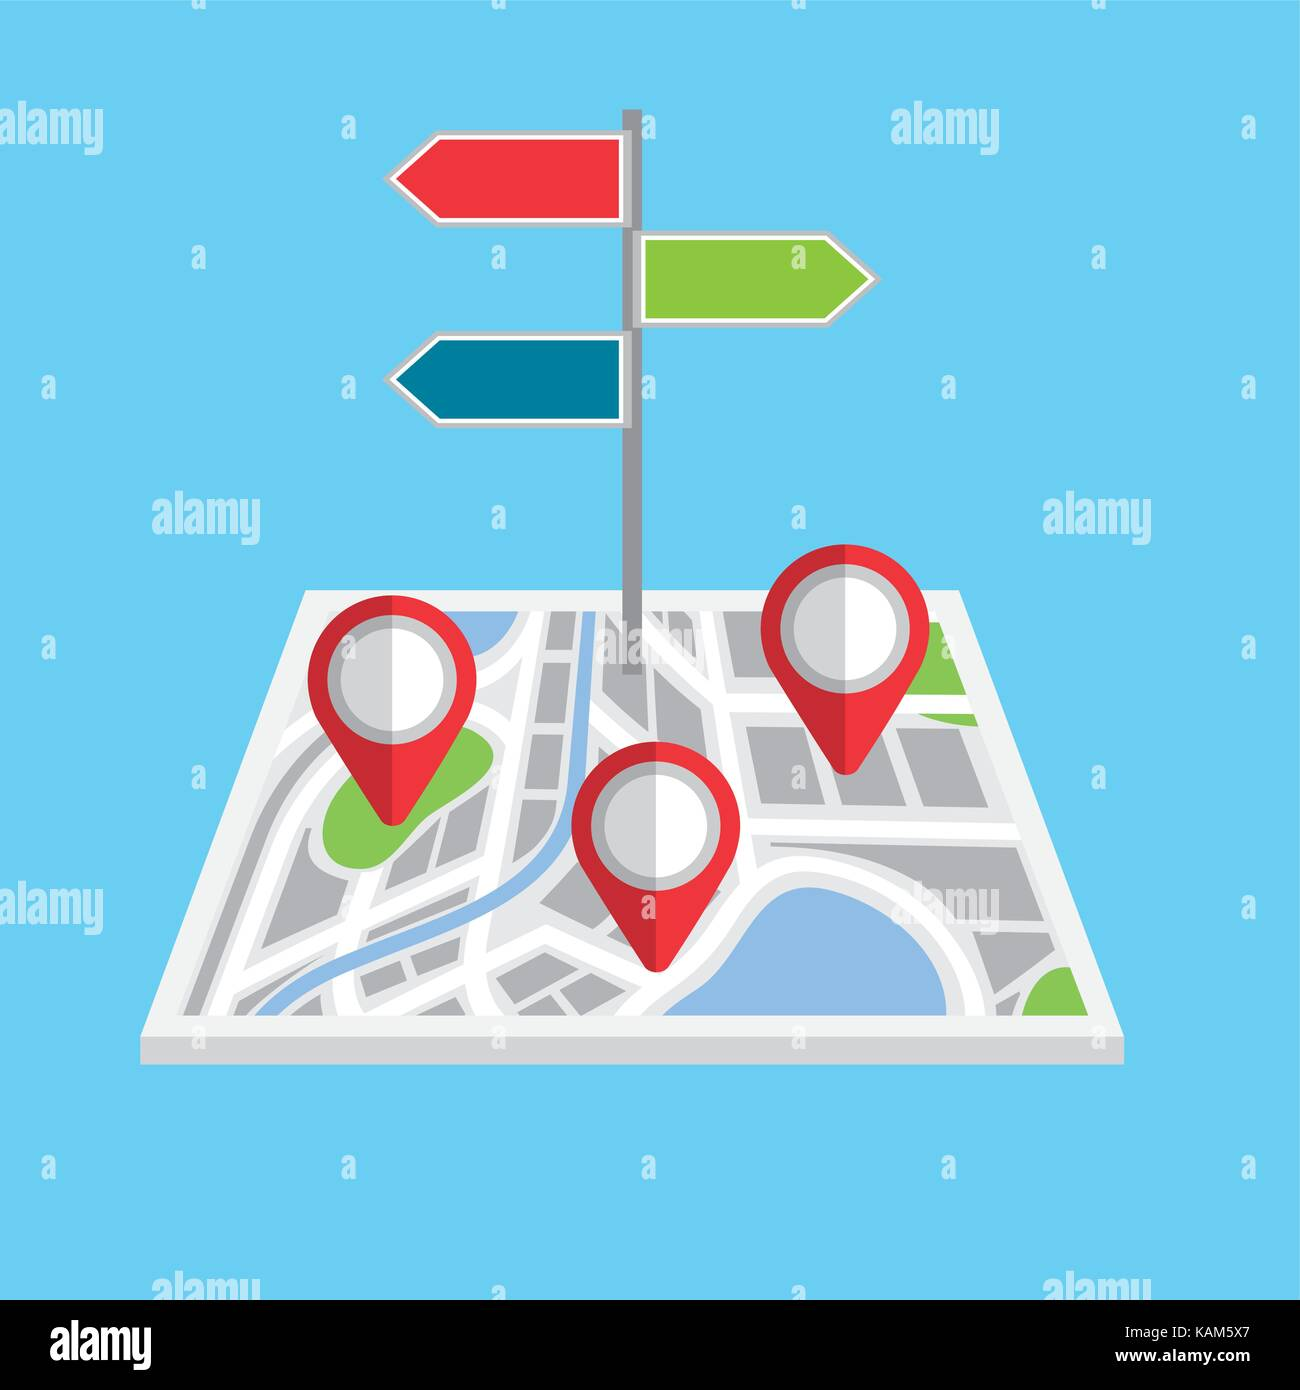 pointers map navigation direction localization signal - Stock Image